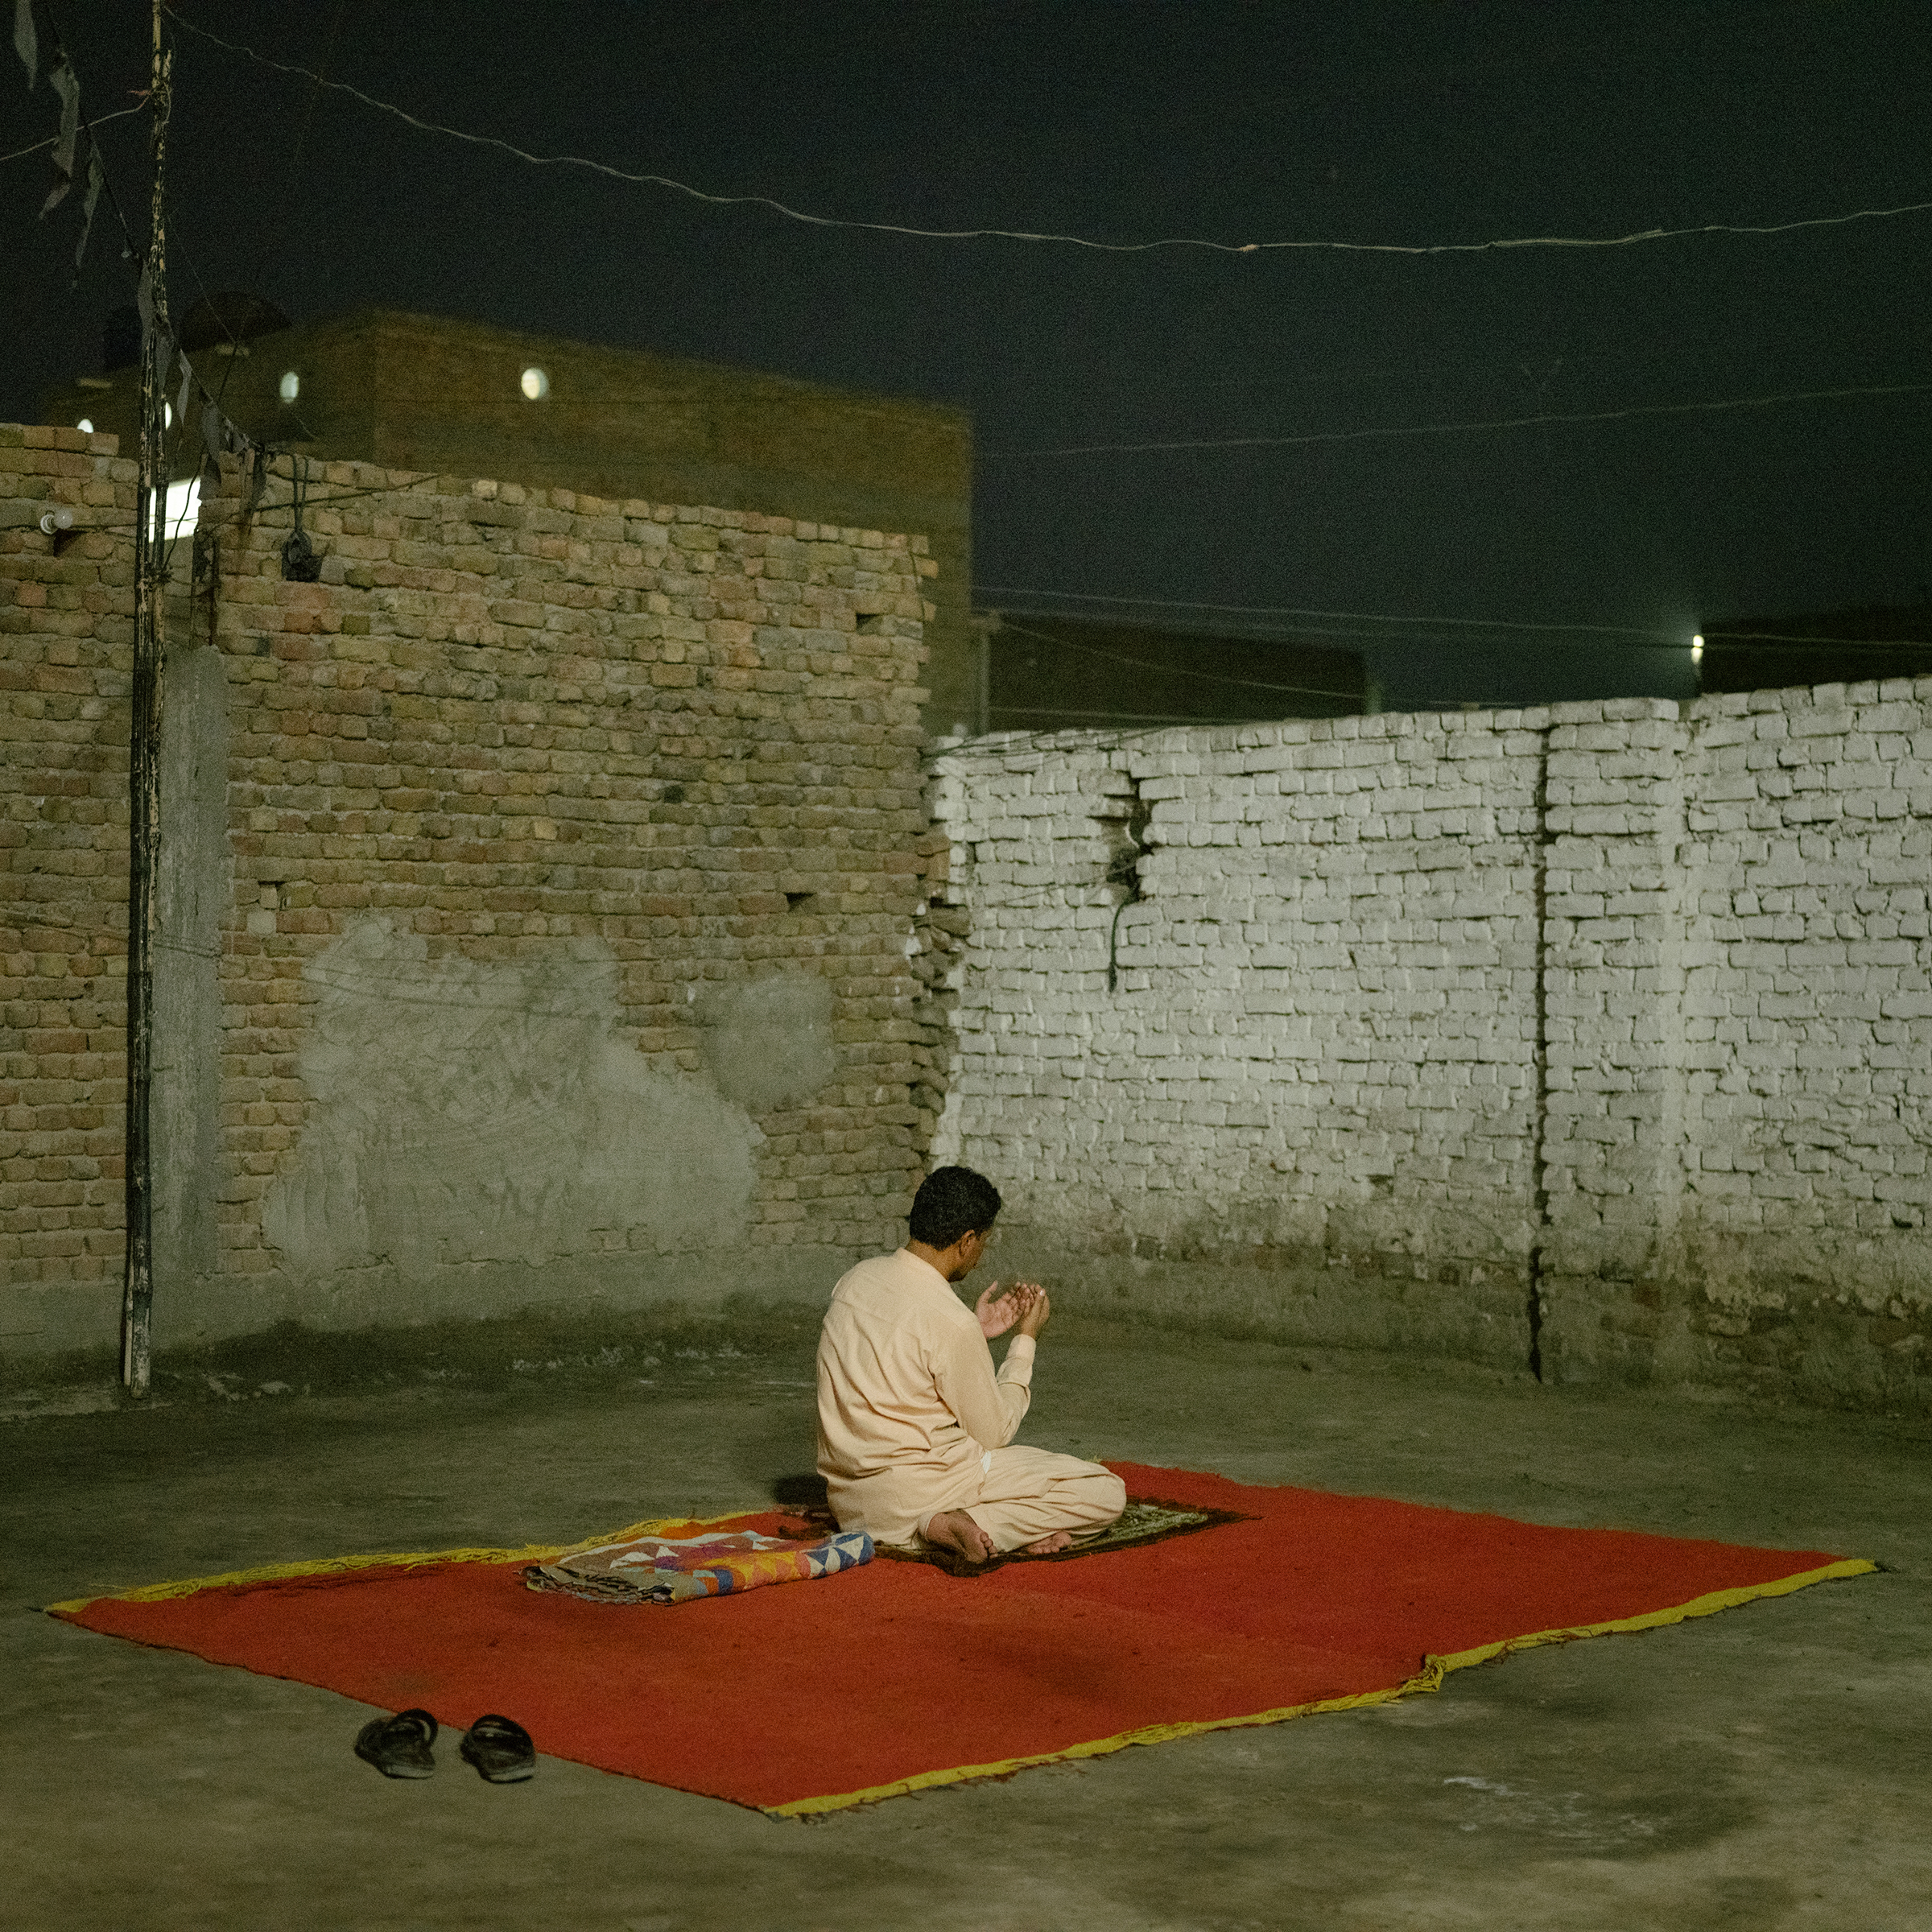 A man performs evening prayers in the city center of Jacobabad on June 27.